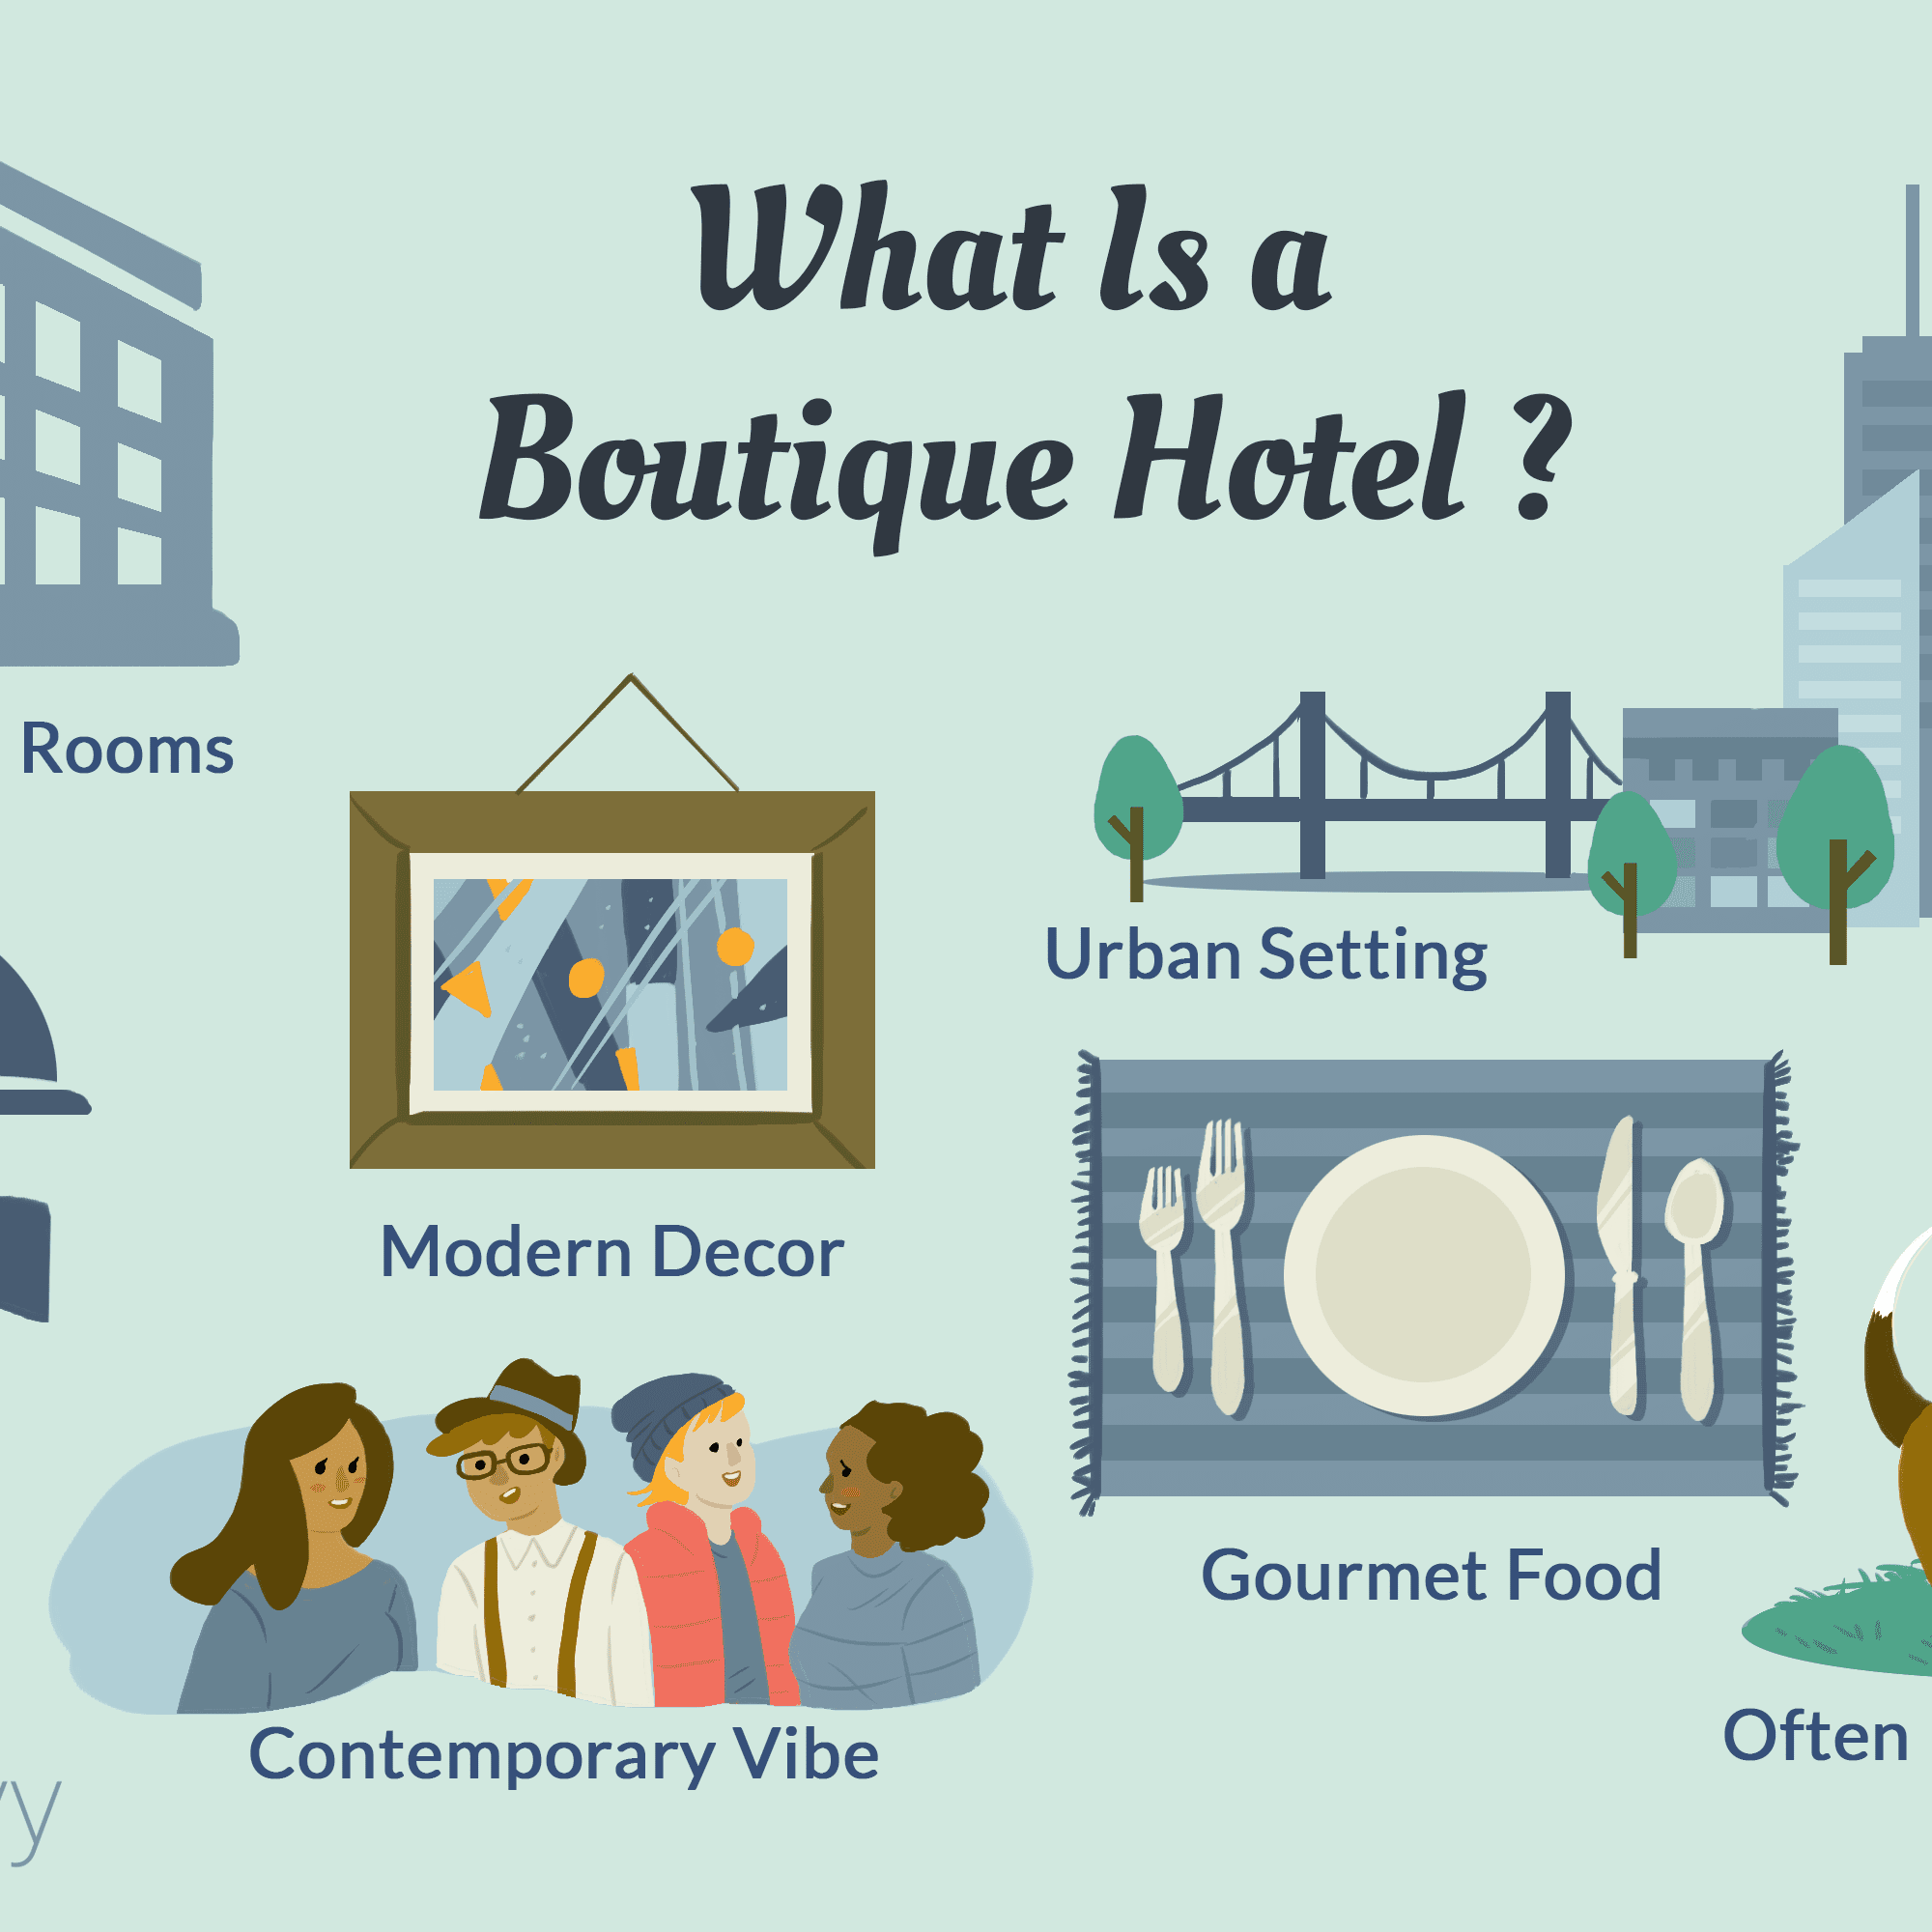 What Are Boutique Hotels?